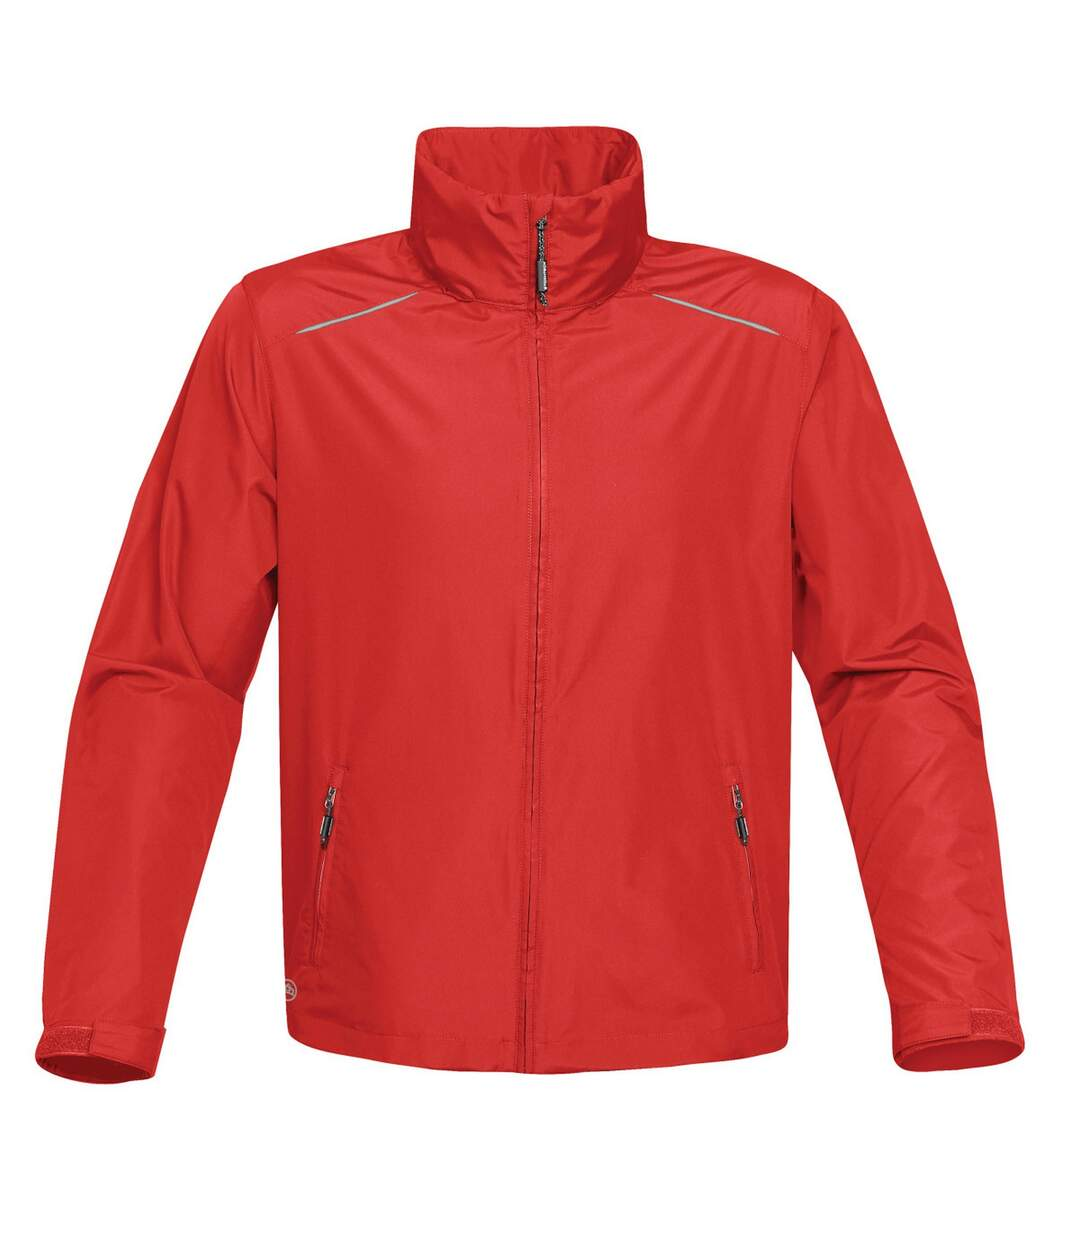 Stormtech Mens Nautilus Performance Shell Jacket (Bright Red) - UTBC3881